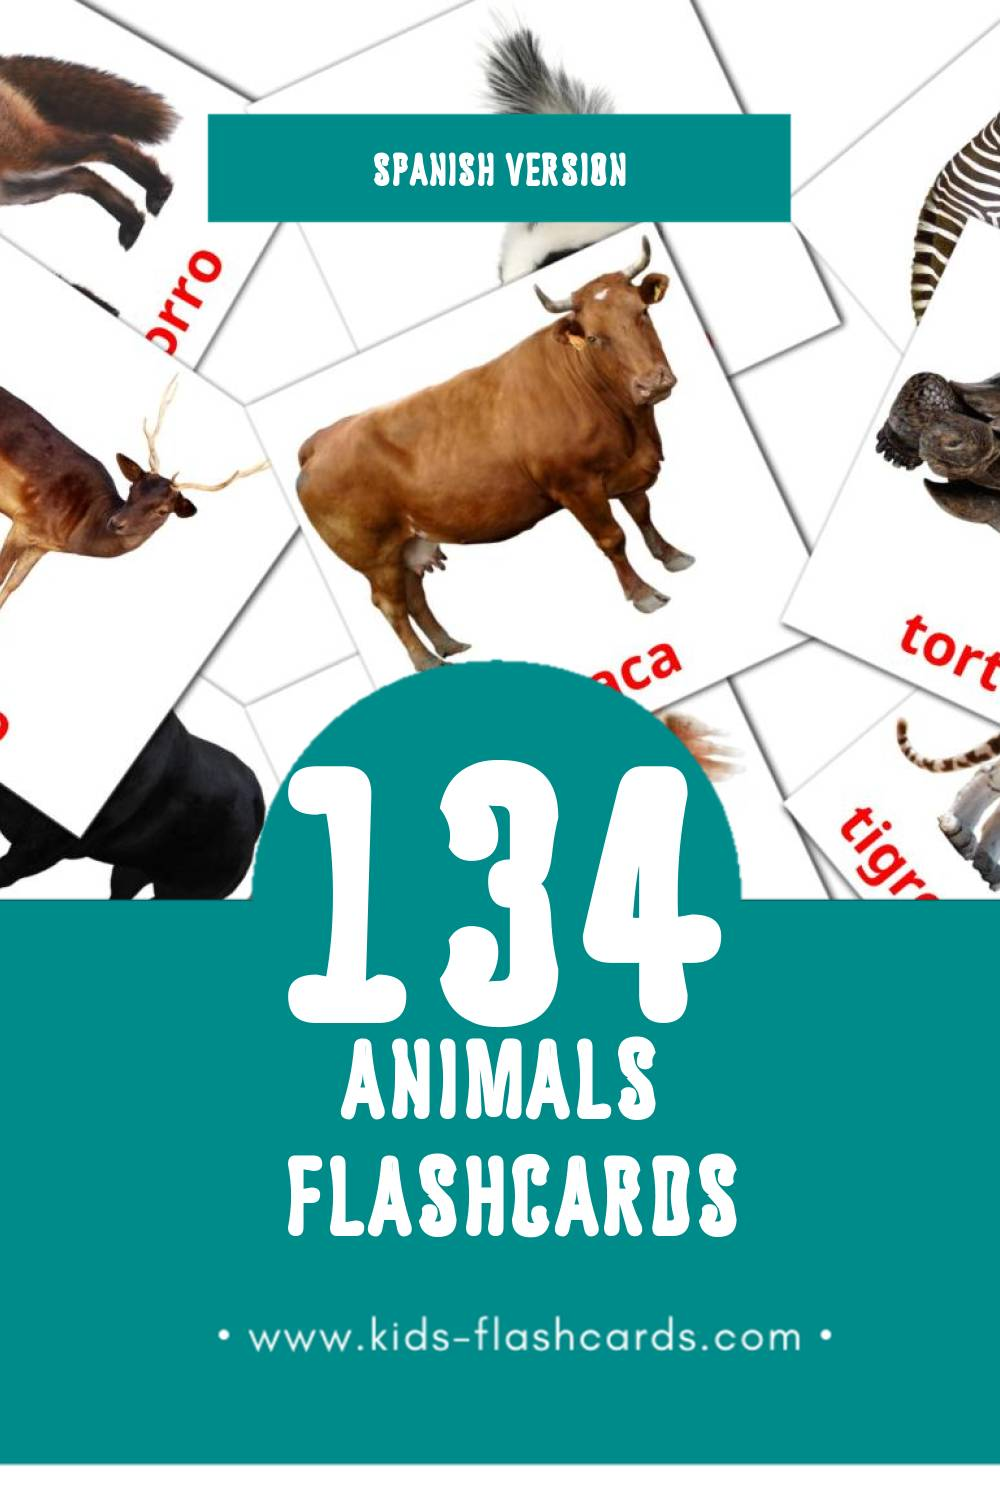 Visual Animales Flashcards for Toddlers (134 cards in Spanish)